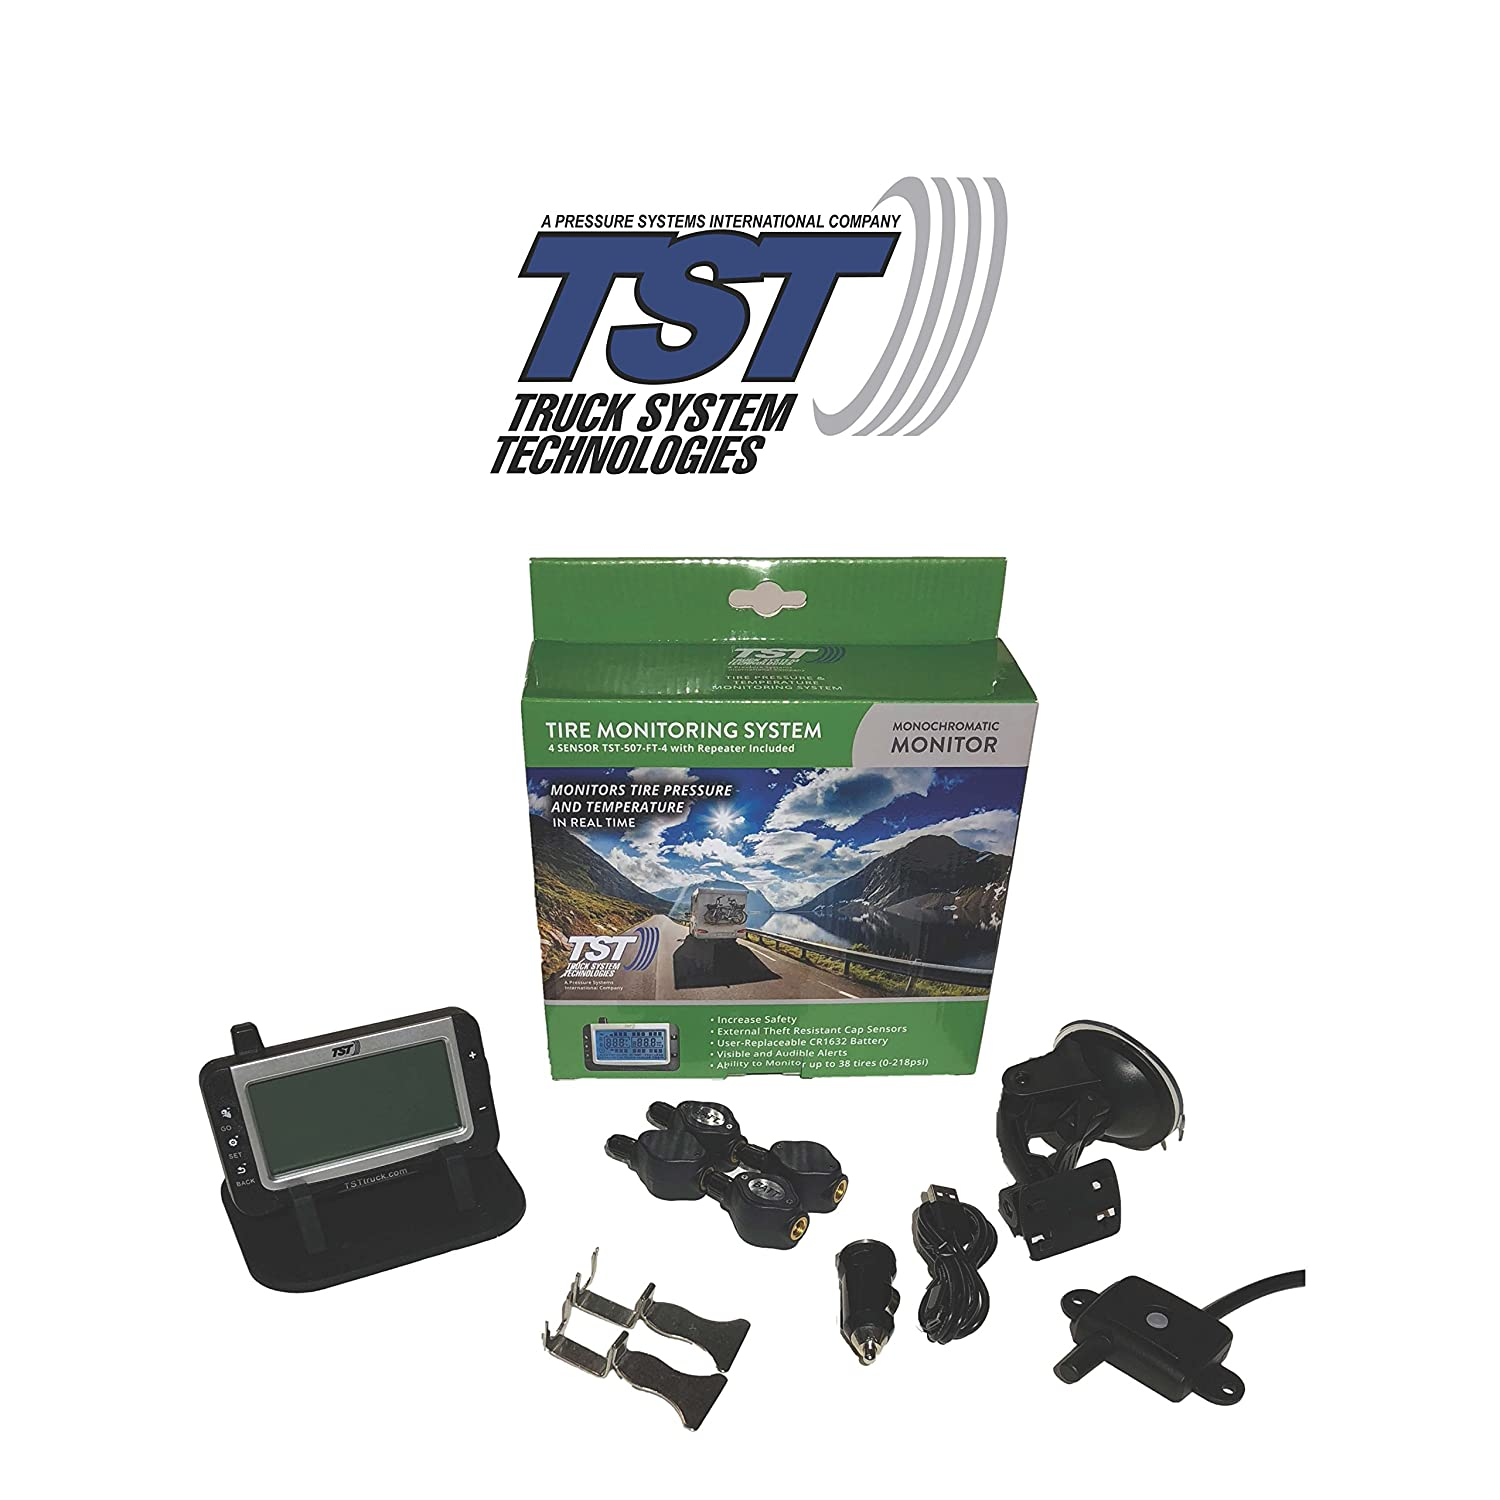 TST 507 4 Sensor Flow Through Tire Monitoring System with Monochrome Display Handles Multiple Trailers